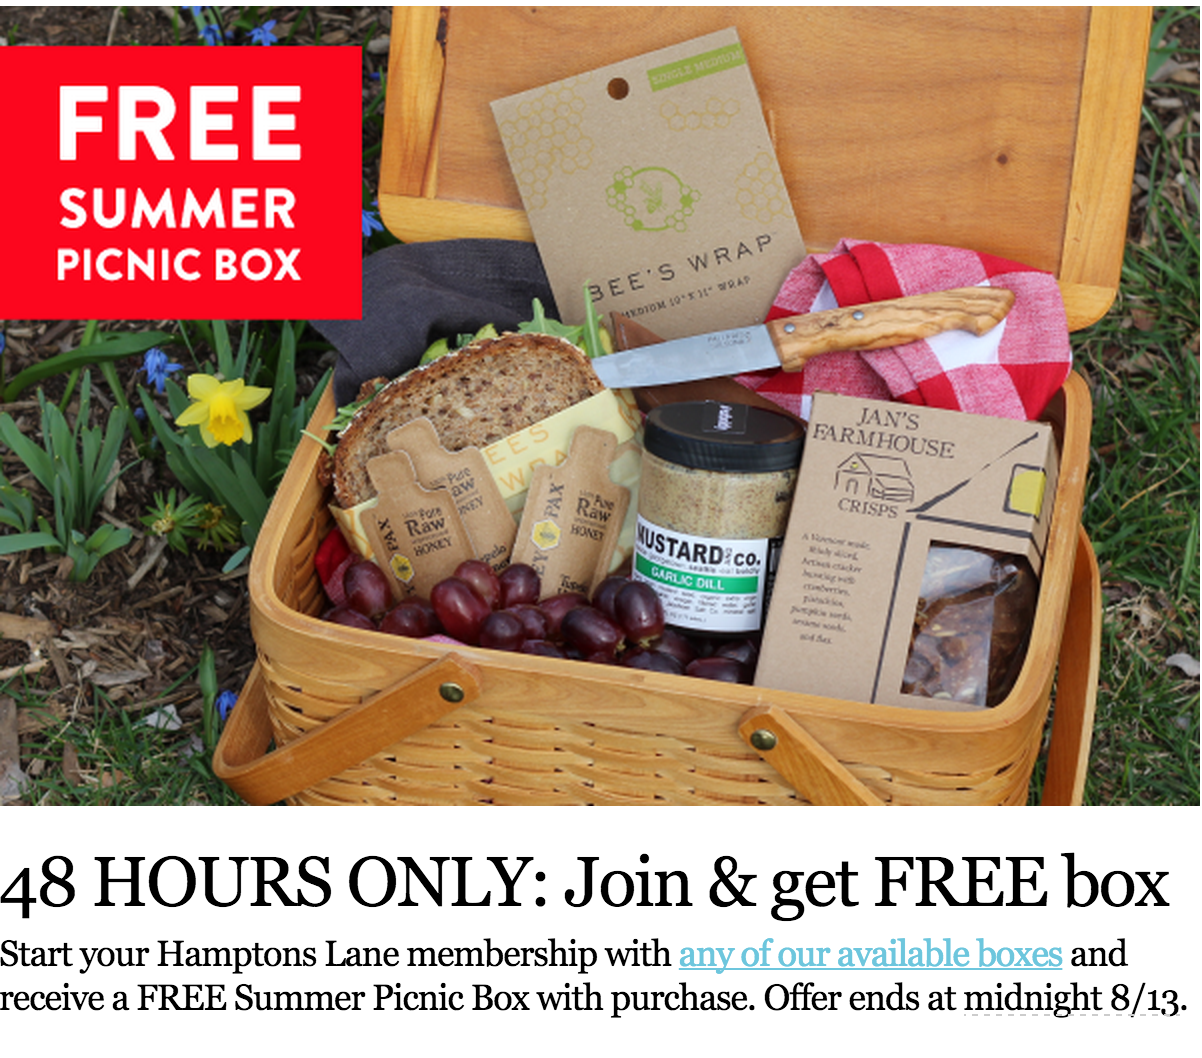 Hamptons Lane free box